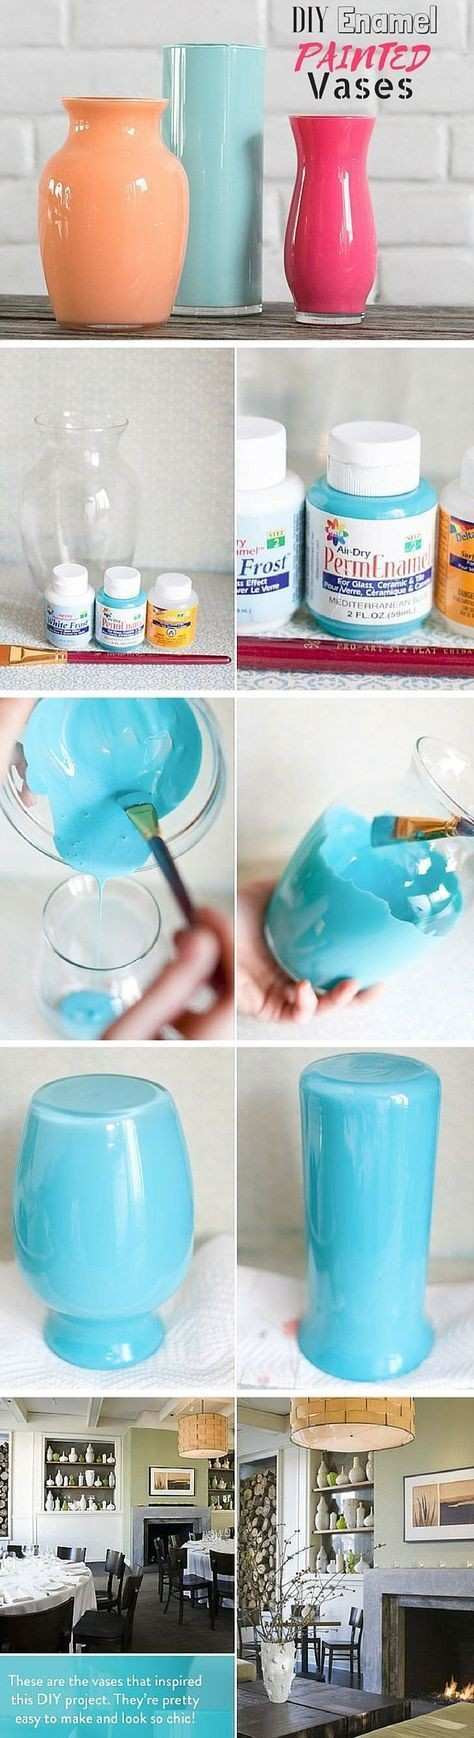 sea glass vase of diy paint on glass inspirational soo cool elegant h vases diy flower intended for diy paint on glass luxury 15 diy projects to make your home look classy of diy